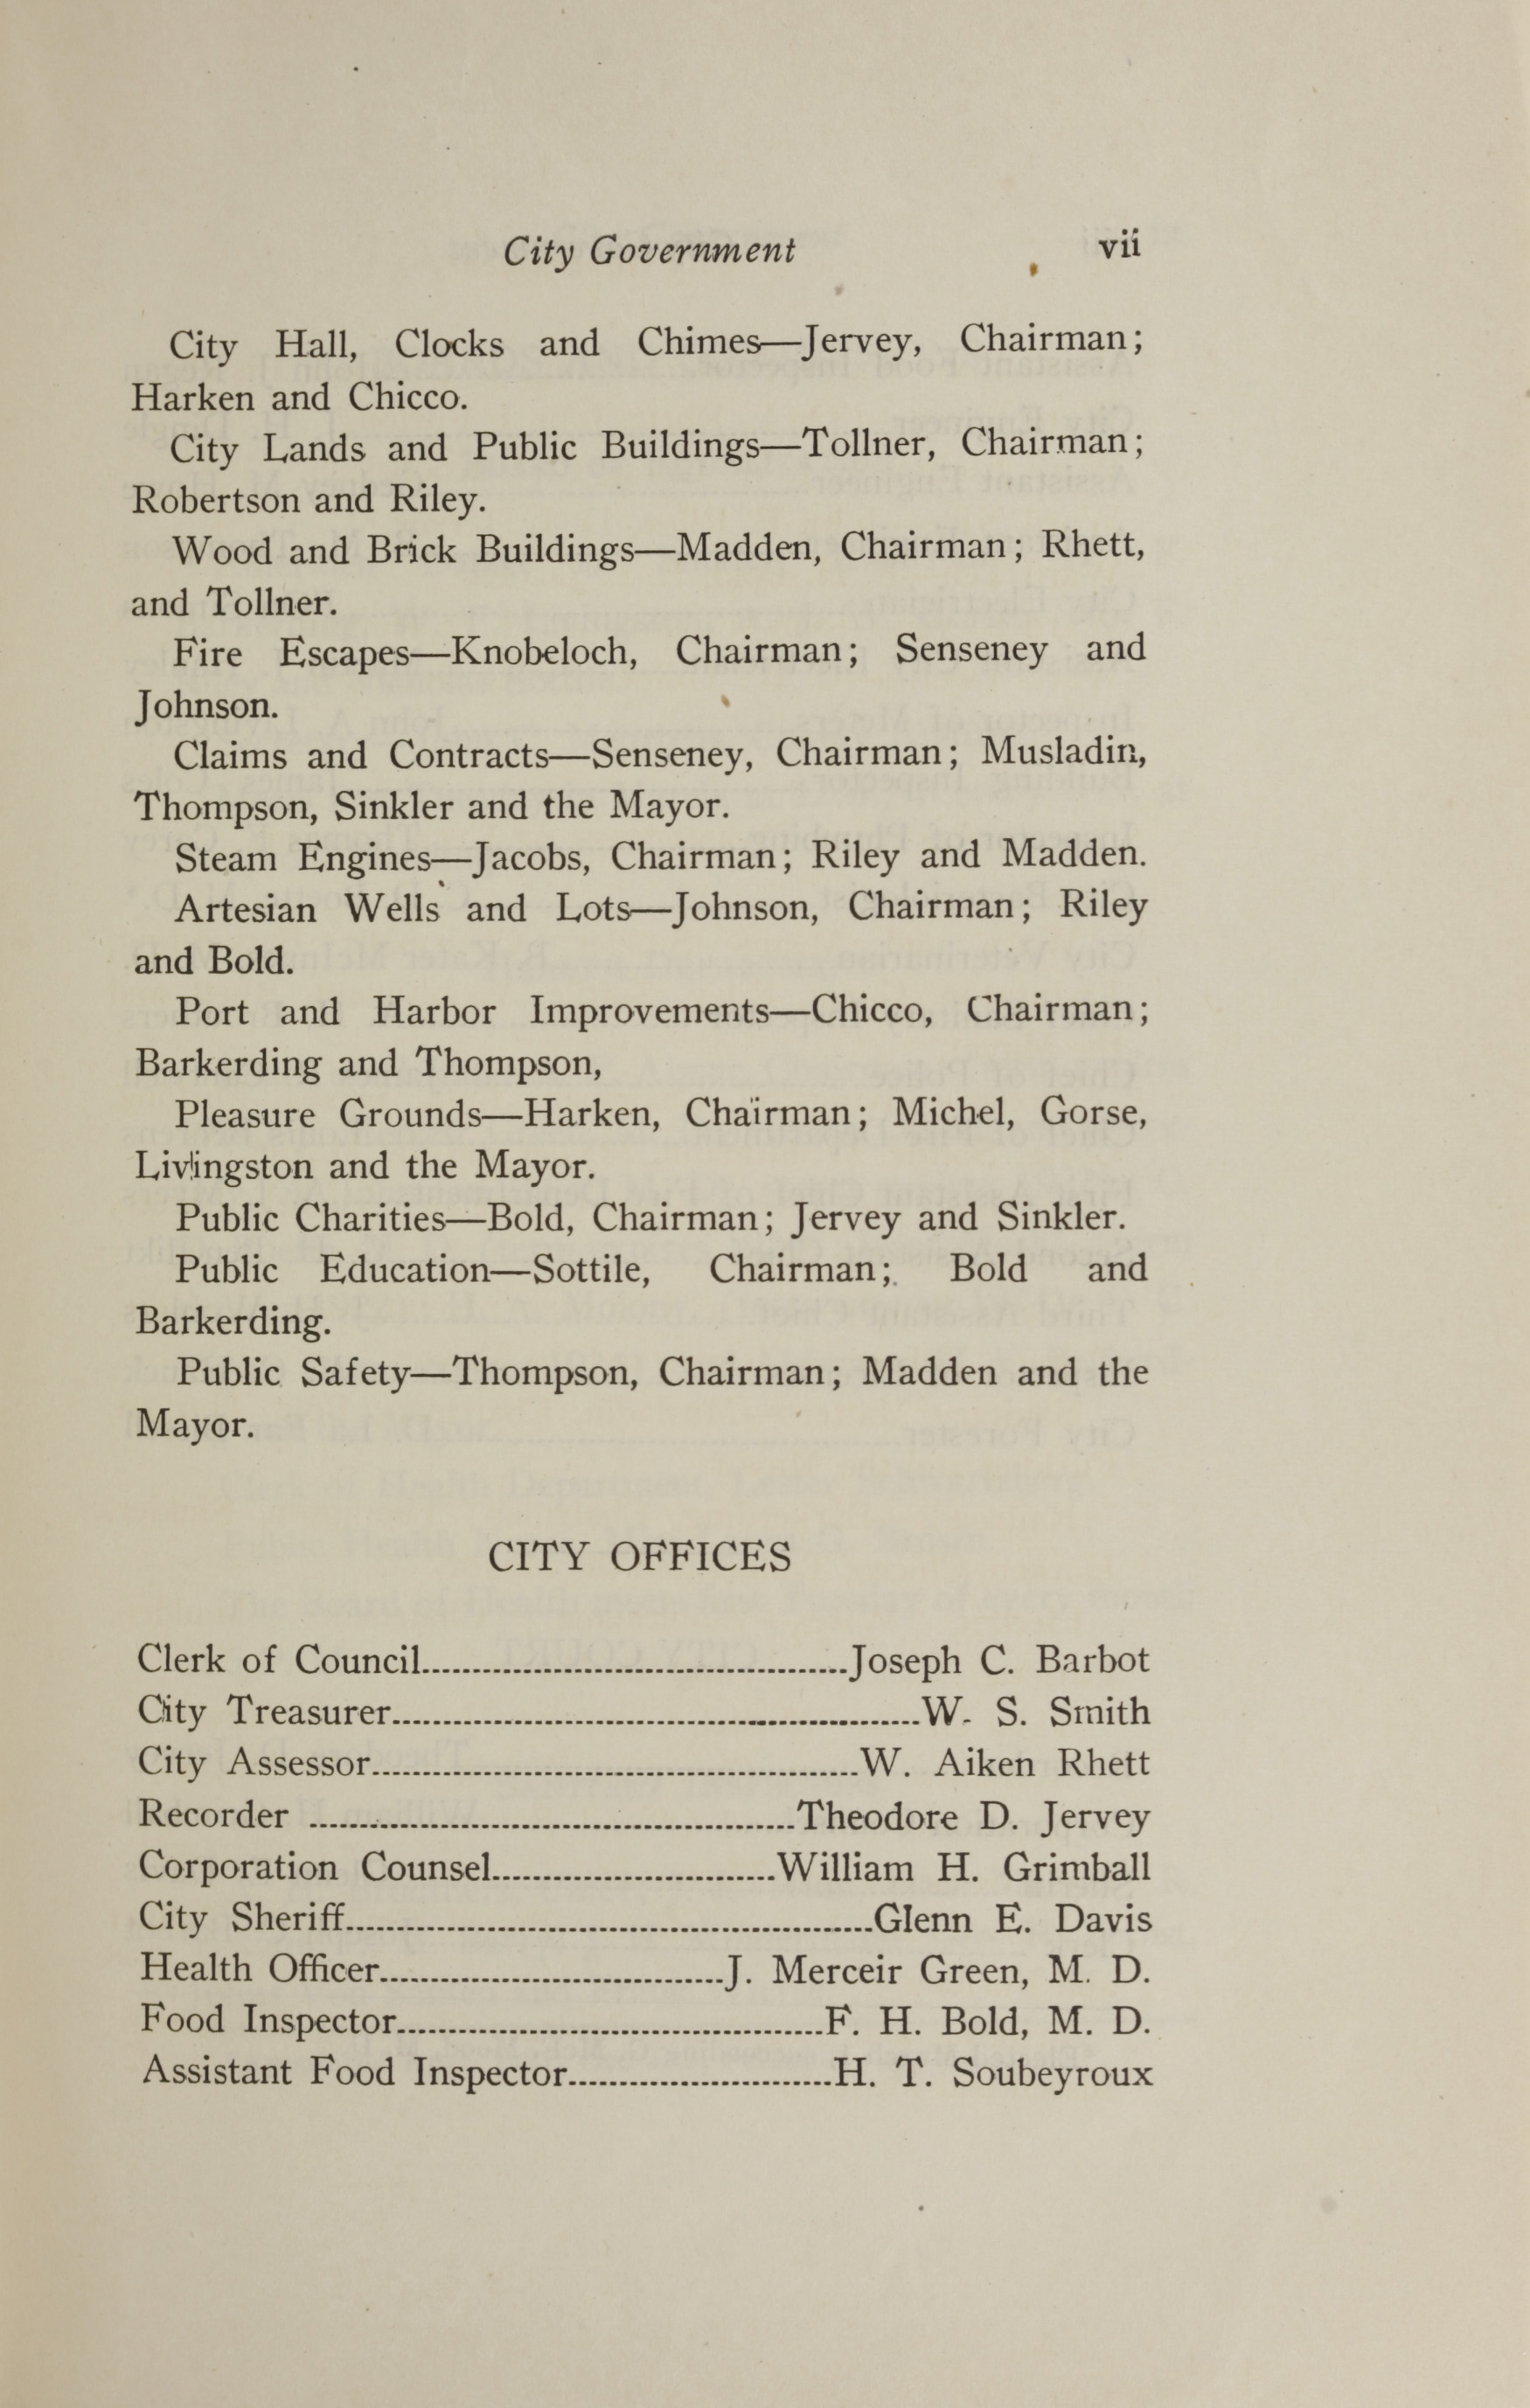 Charleston Yearbook, 1921, page vii